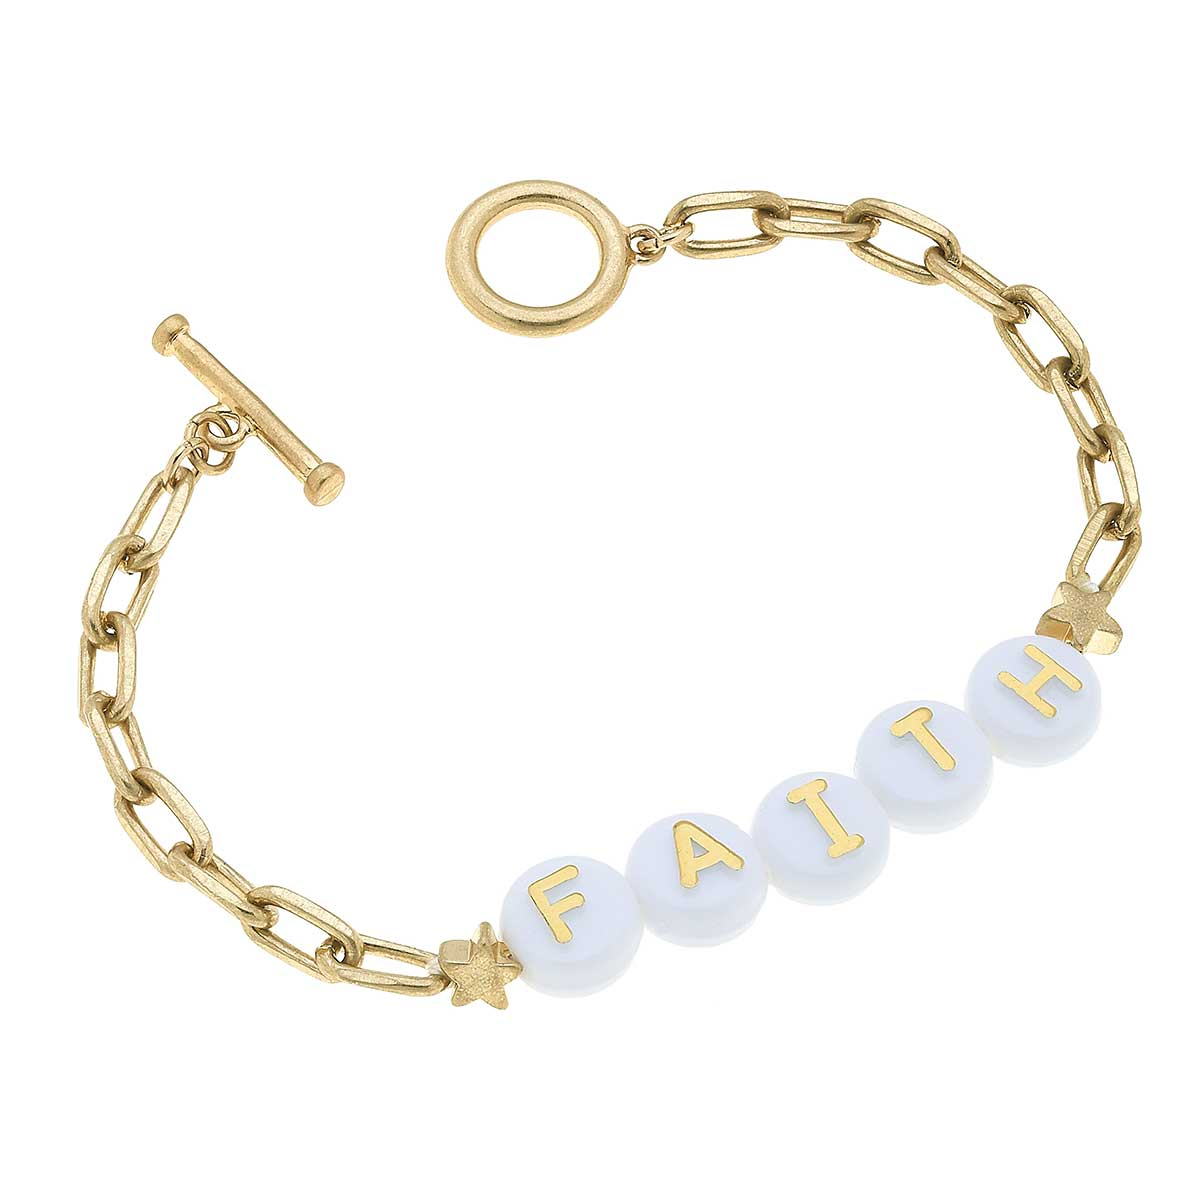 Faith Block Letter Paperclip Chain T-Bar Bracelet in Worn Gold